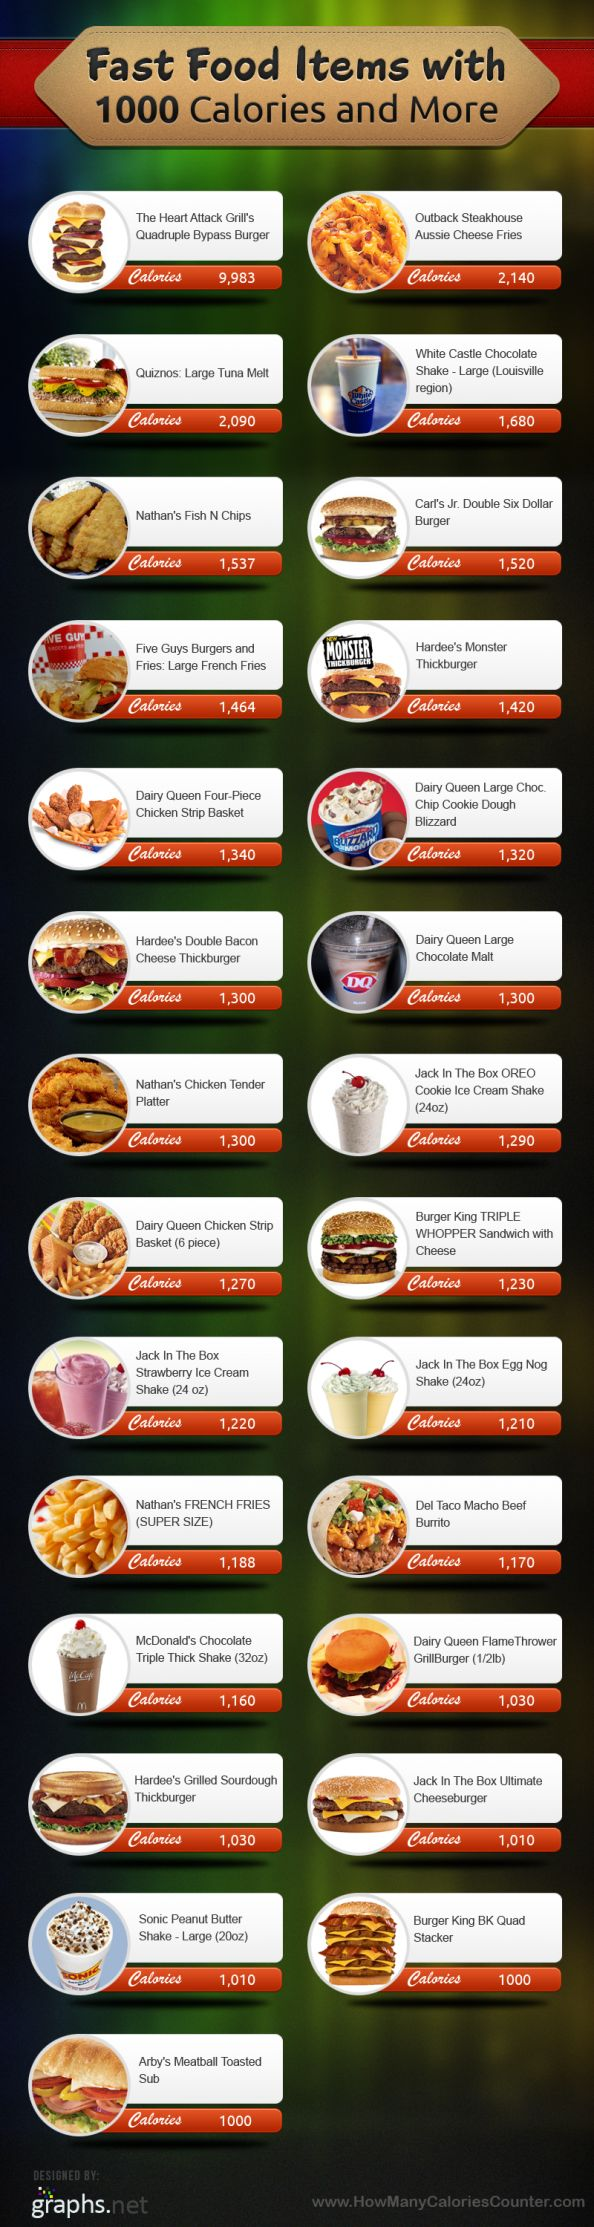 What part of the fast food industry is most interesting to look into?